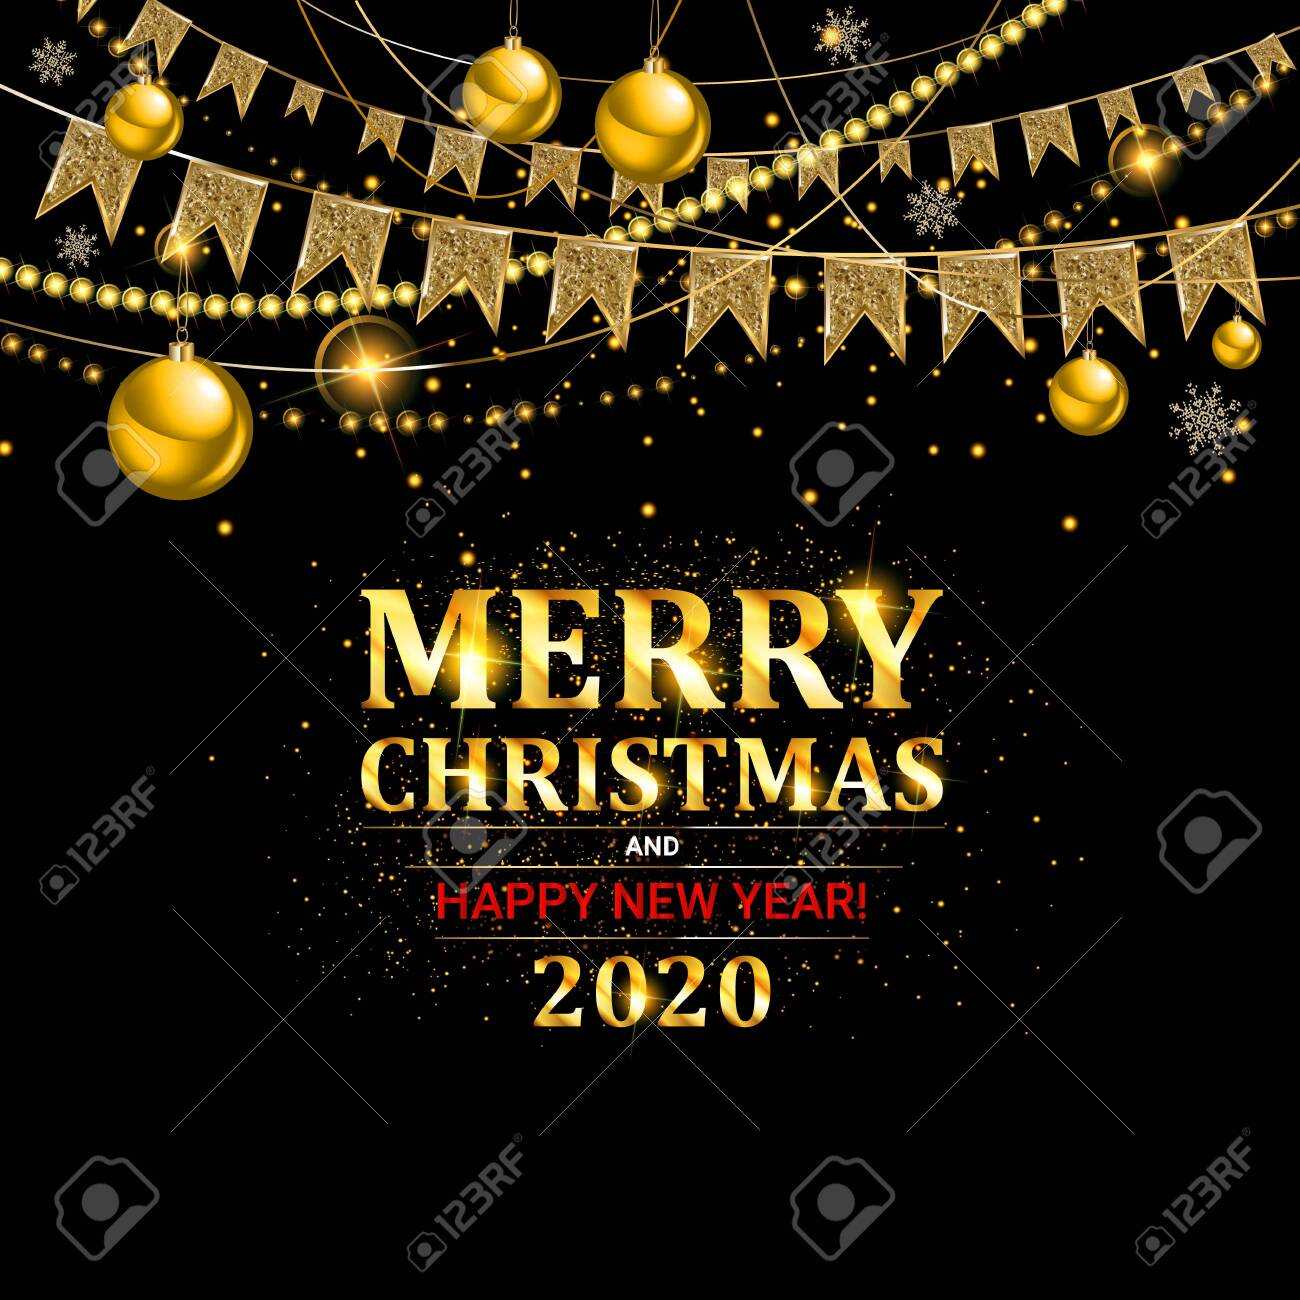 Invitation Merry Christmas Party And Happy New Year 2020 Poster